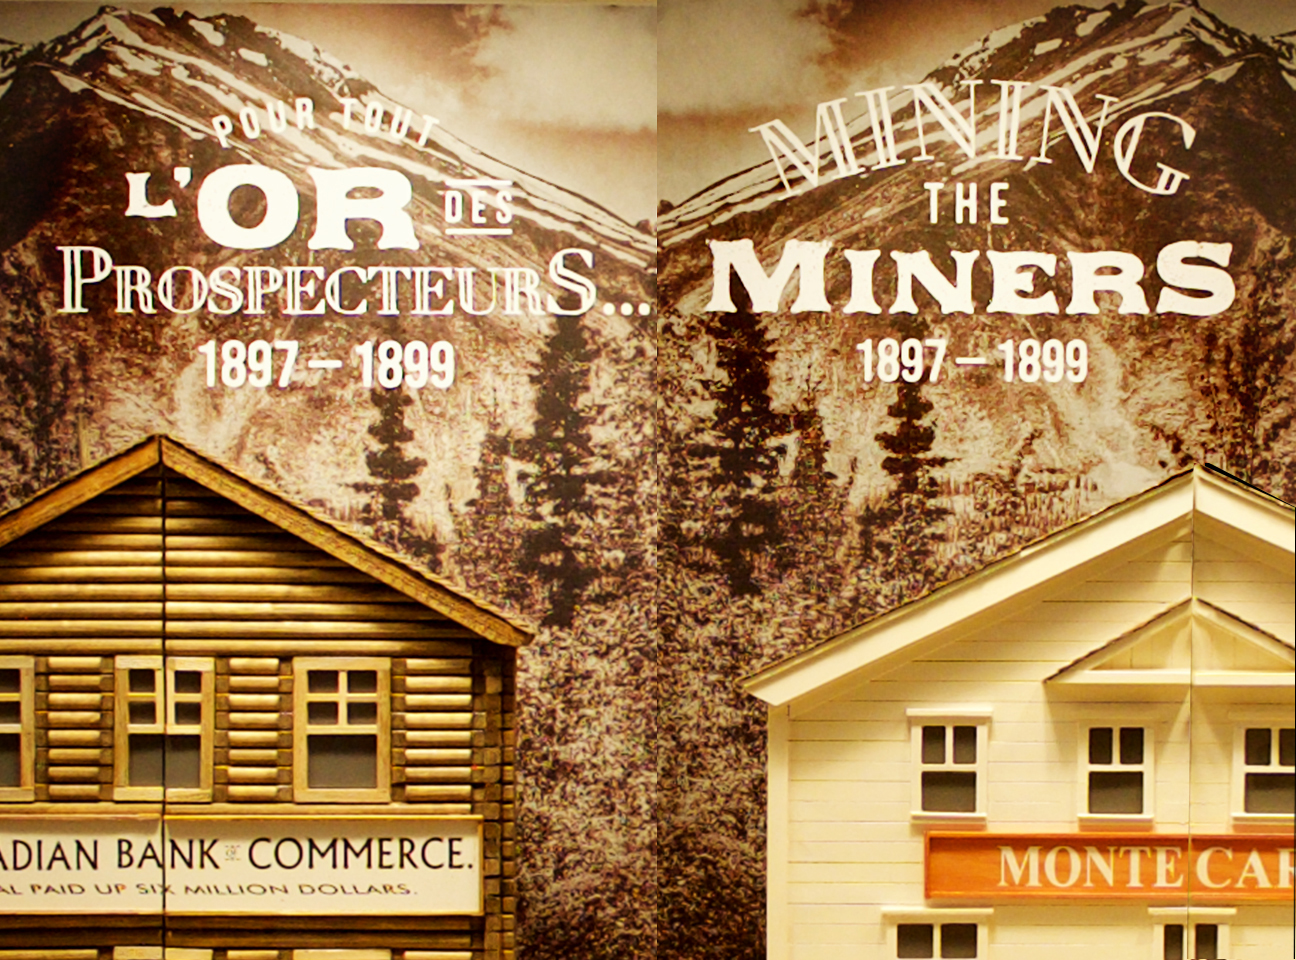 Gold Rush! and Mining the Miners - Bank of Canada Museum